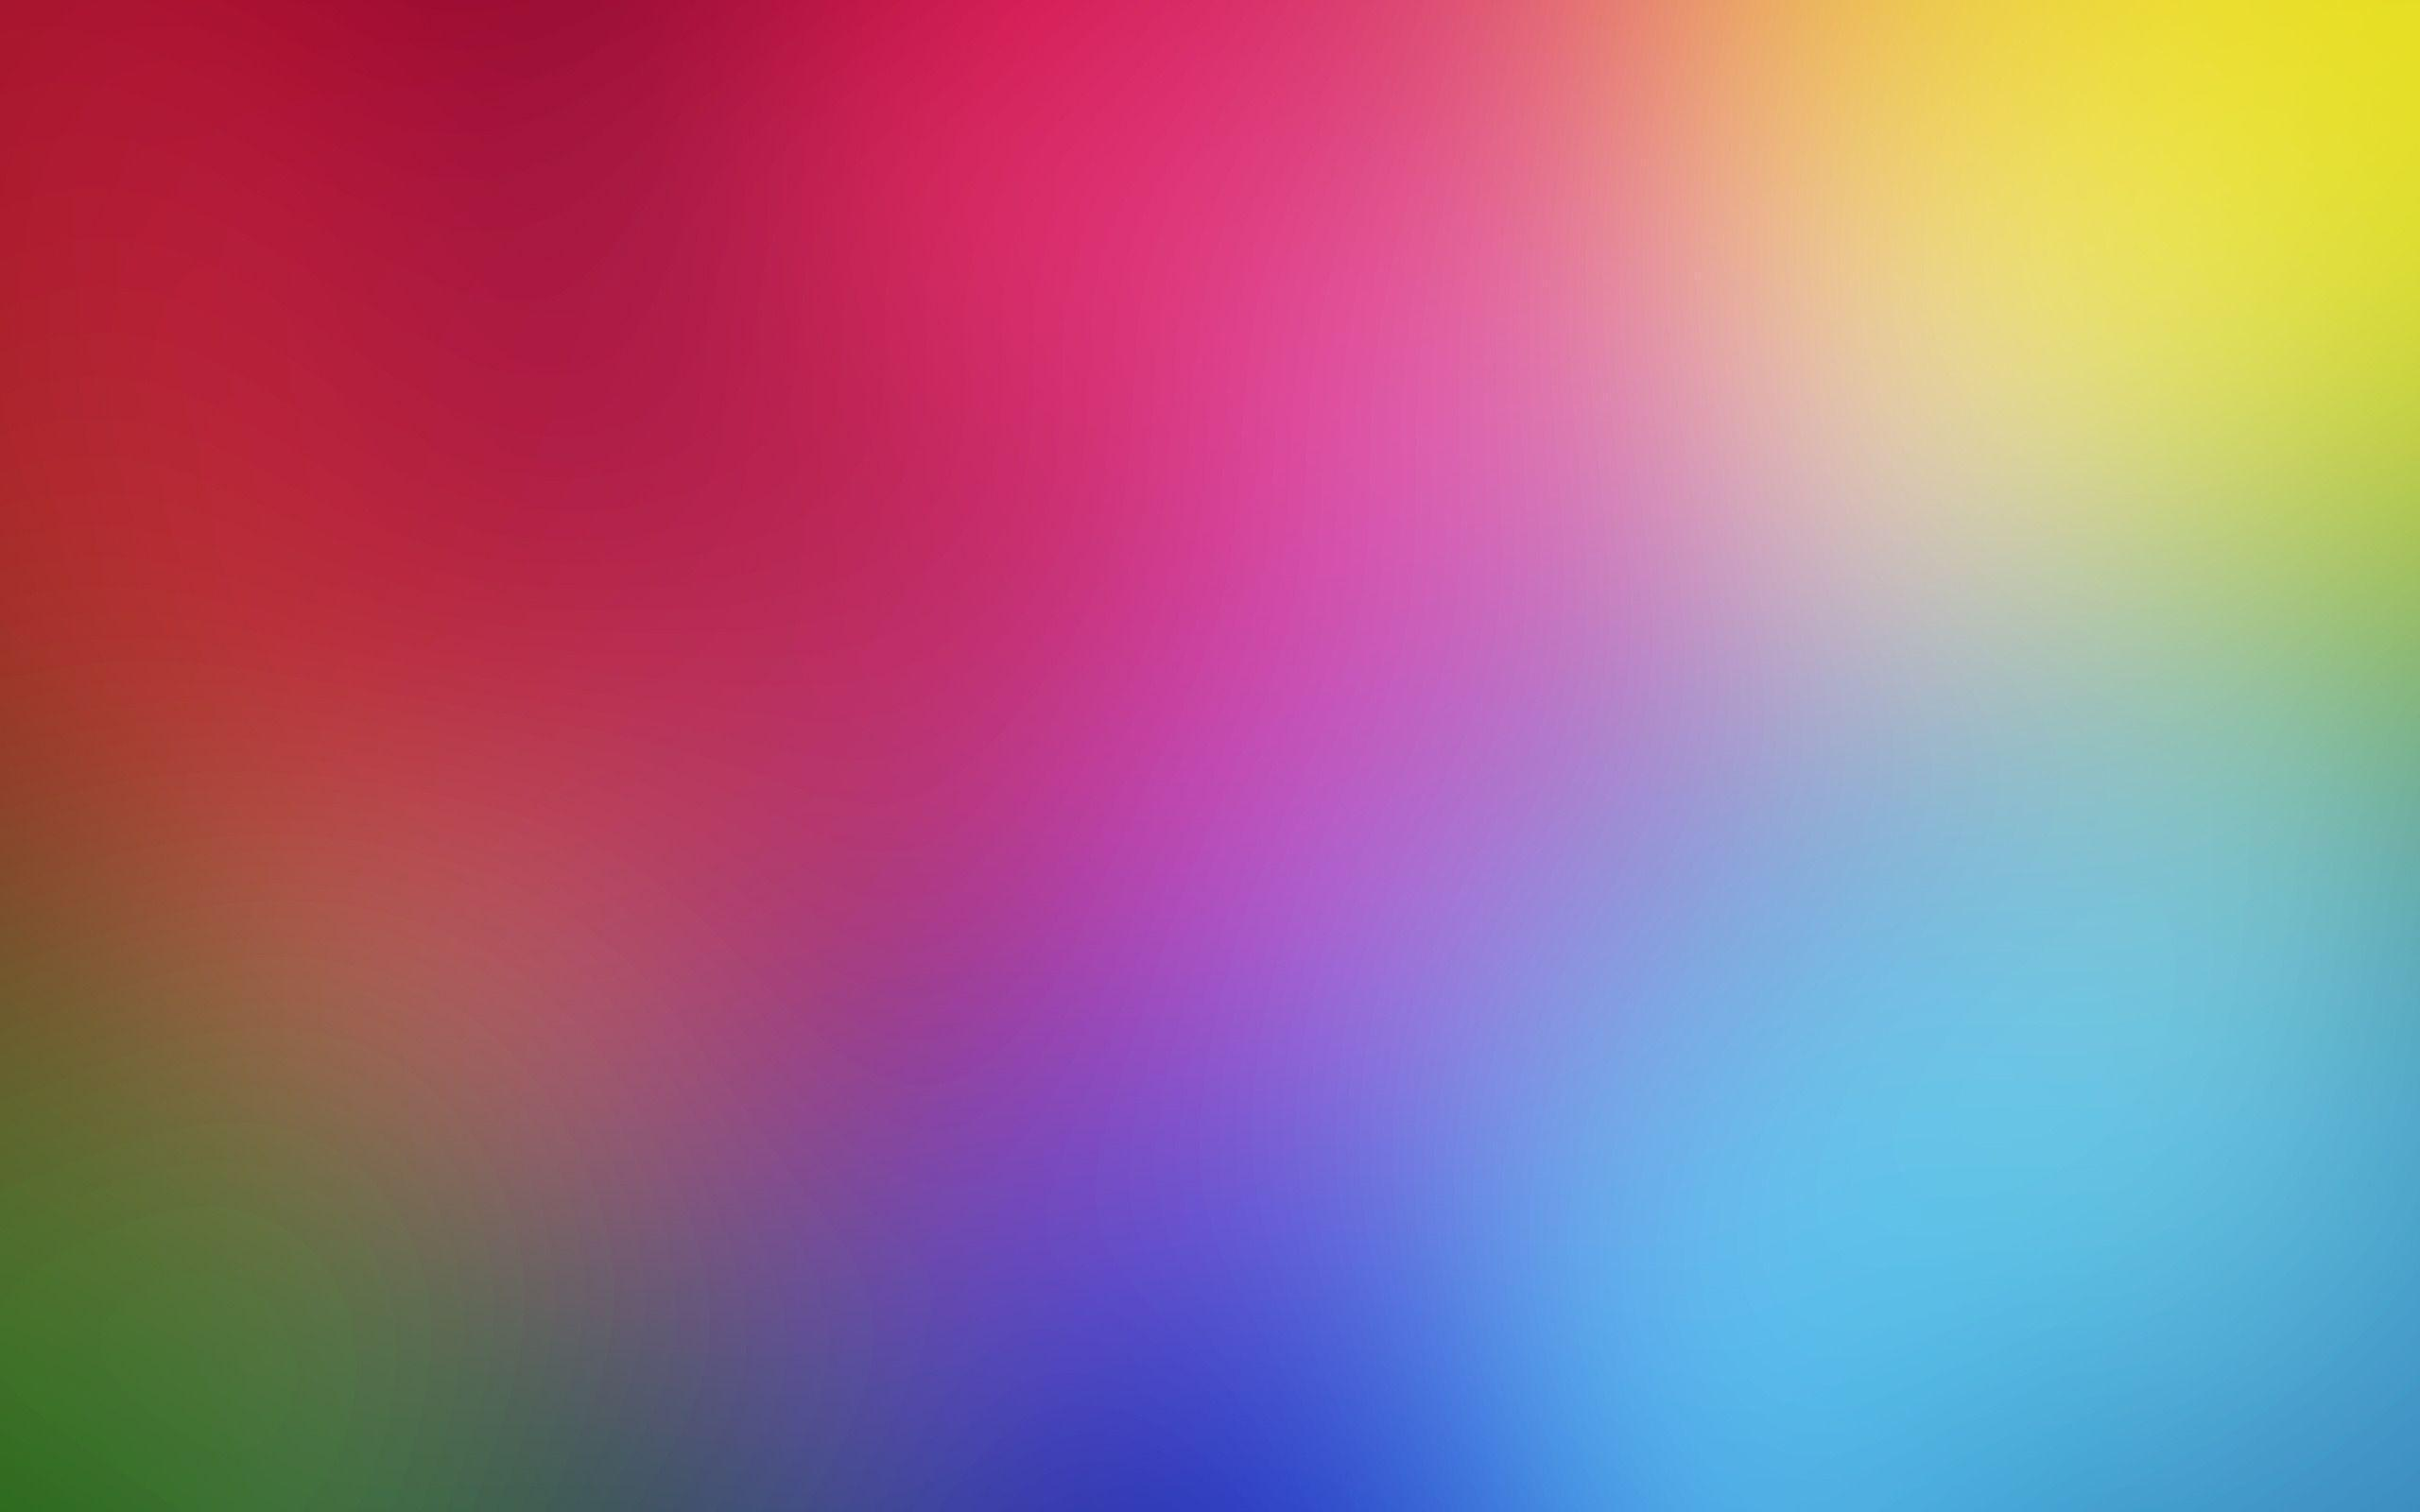 Colors Backgrounds Wallpaper Cave Coloring Background